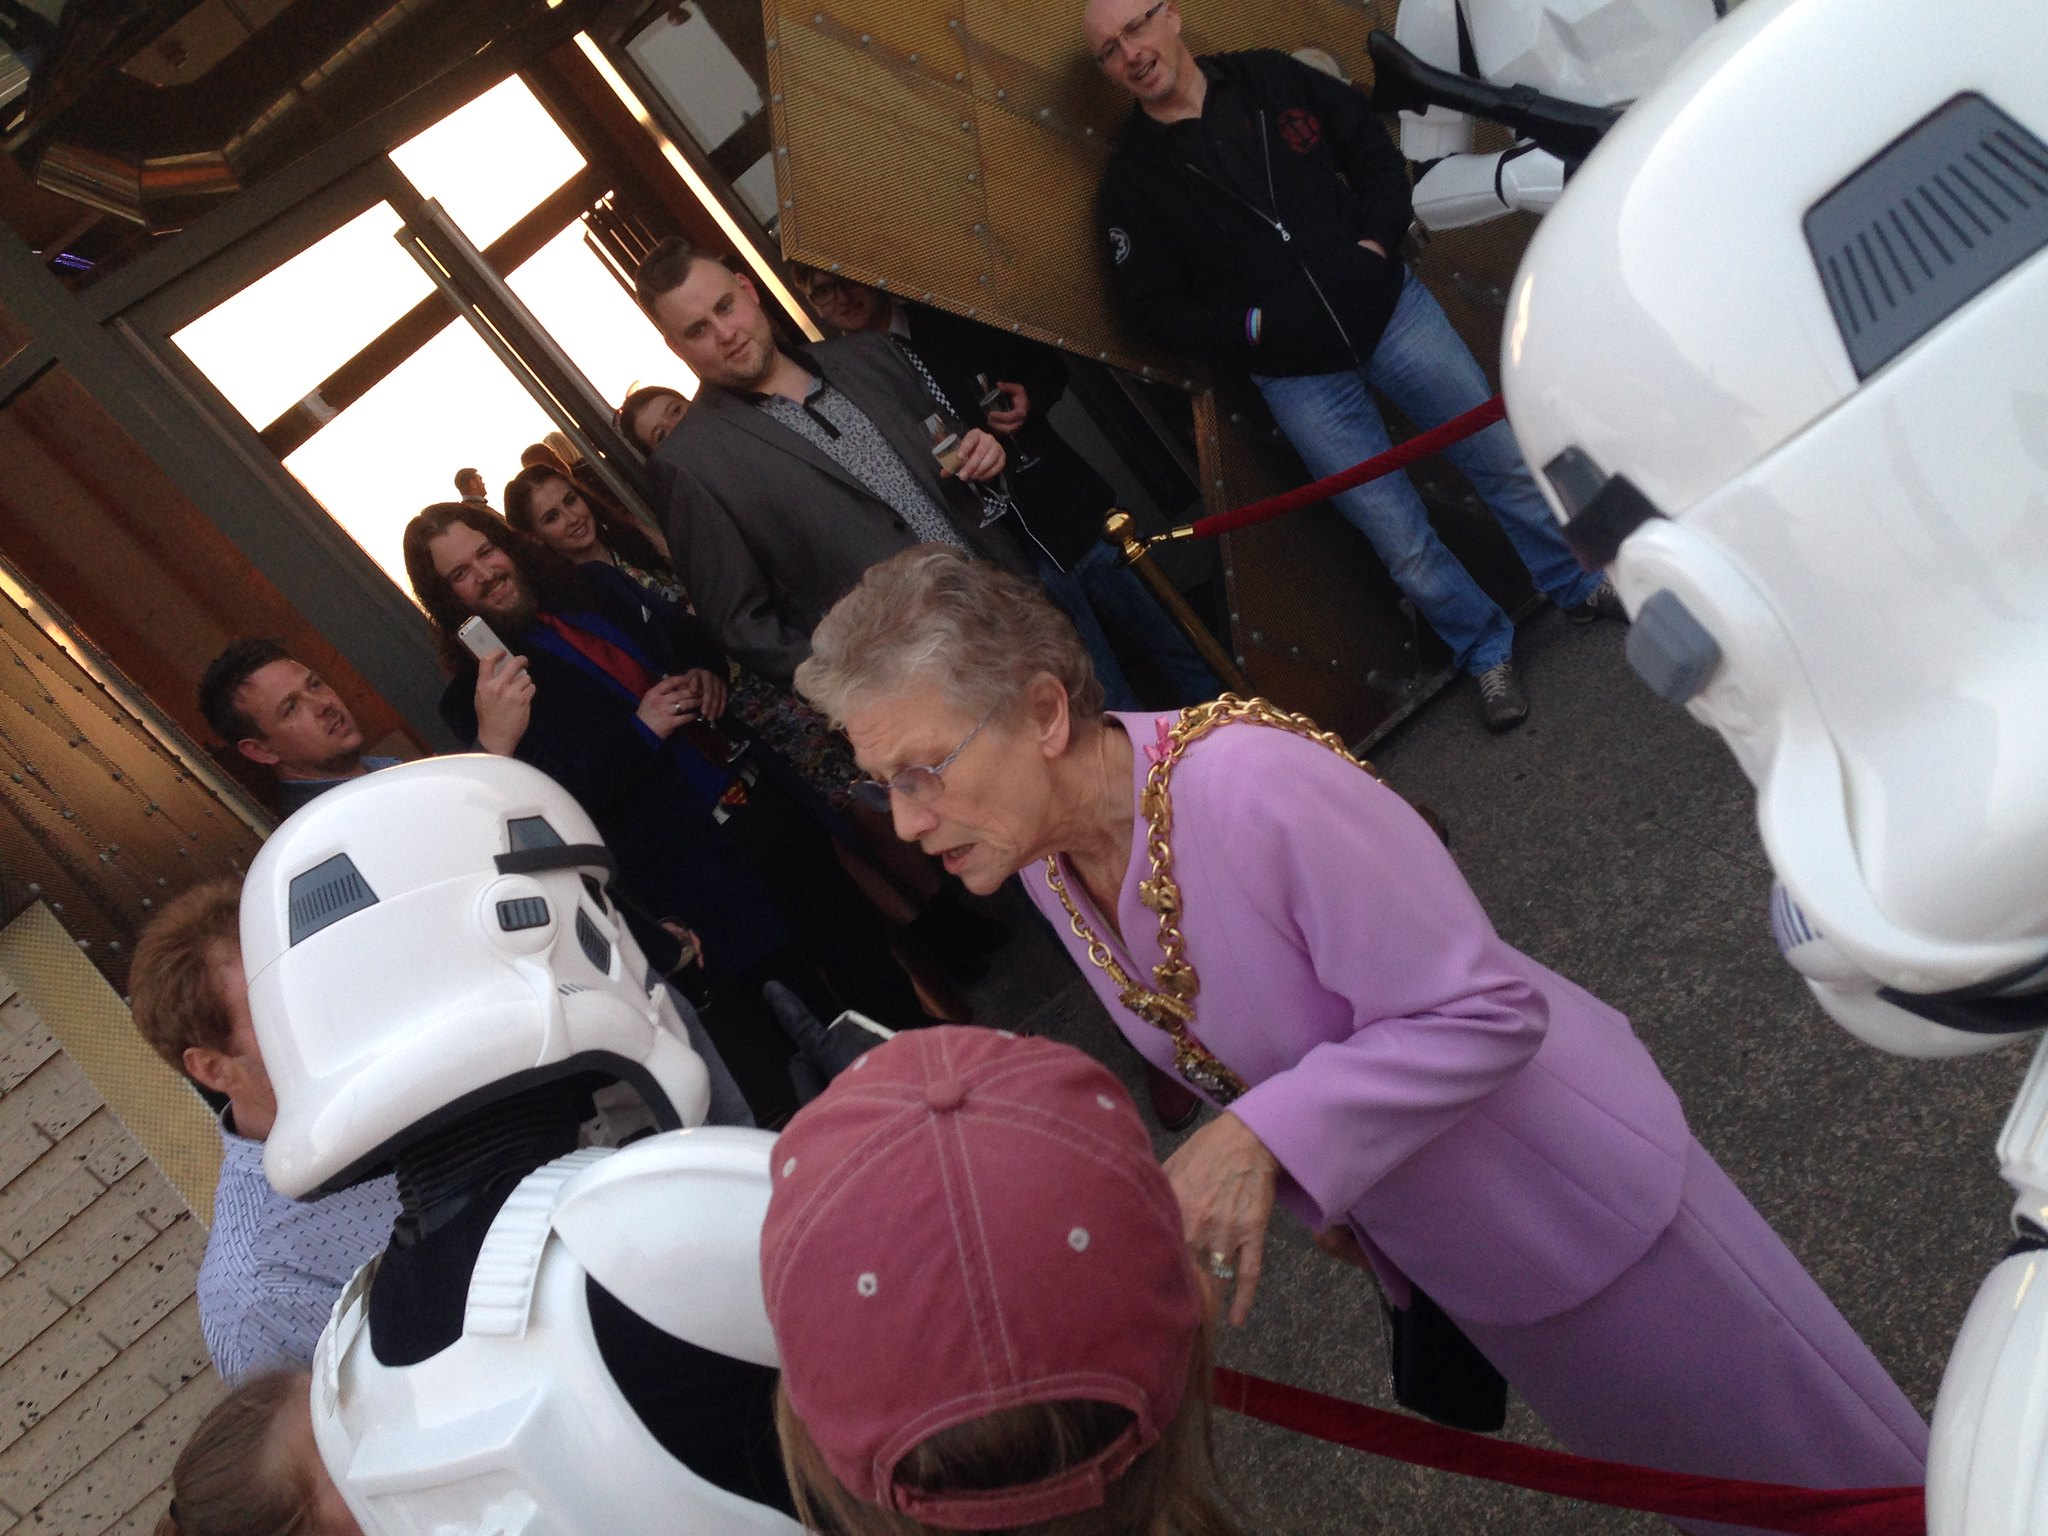 Blackpool Comic-Con Launch Party - Star Wars Stormtroopers giving an Imperial welcome to the Mayoress of Blackpool